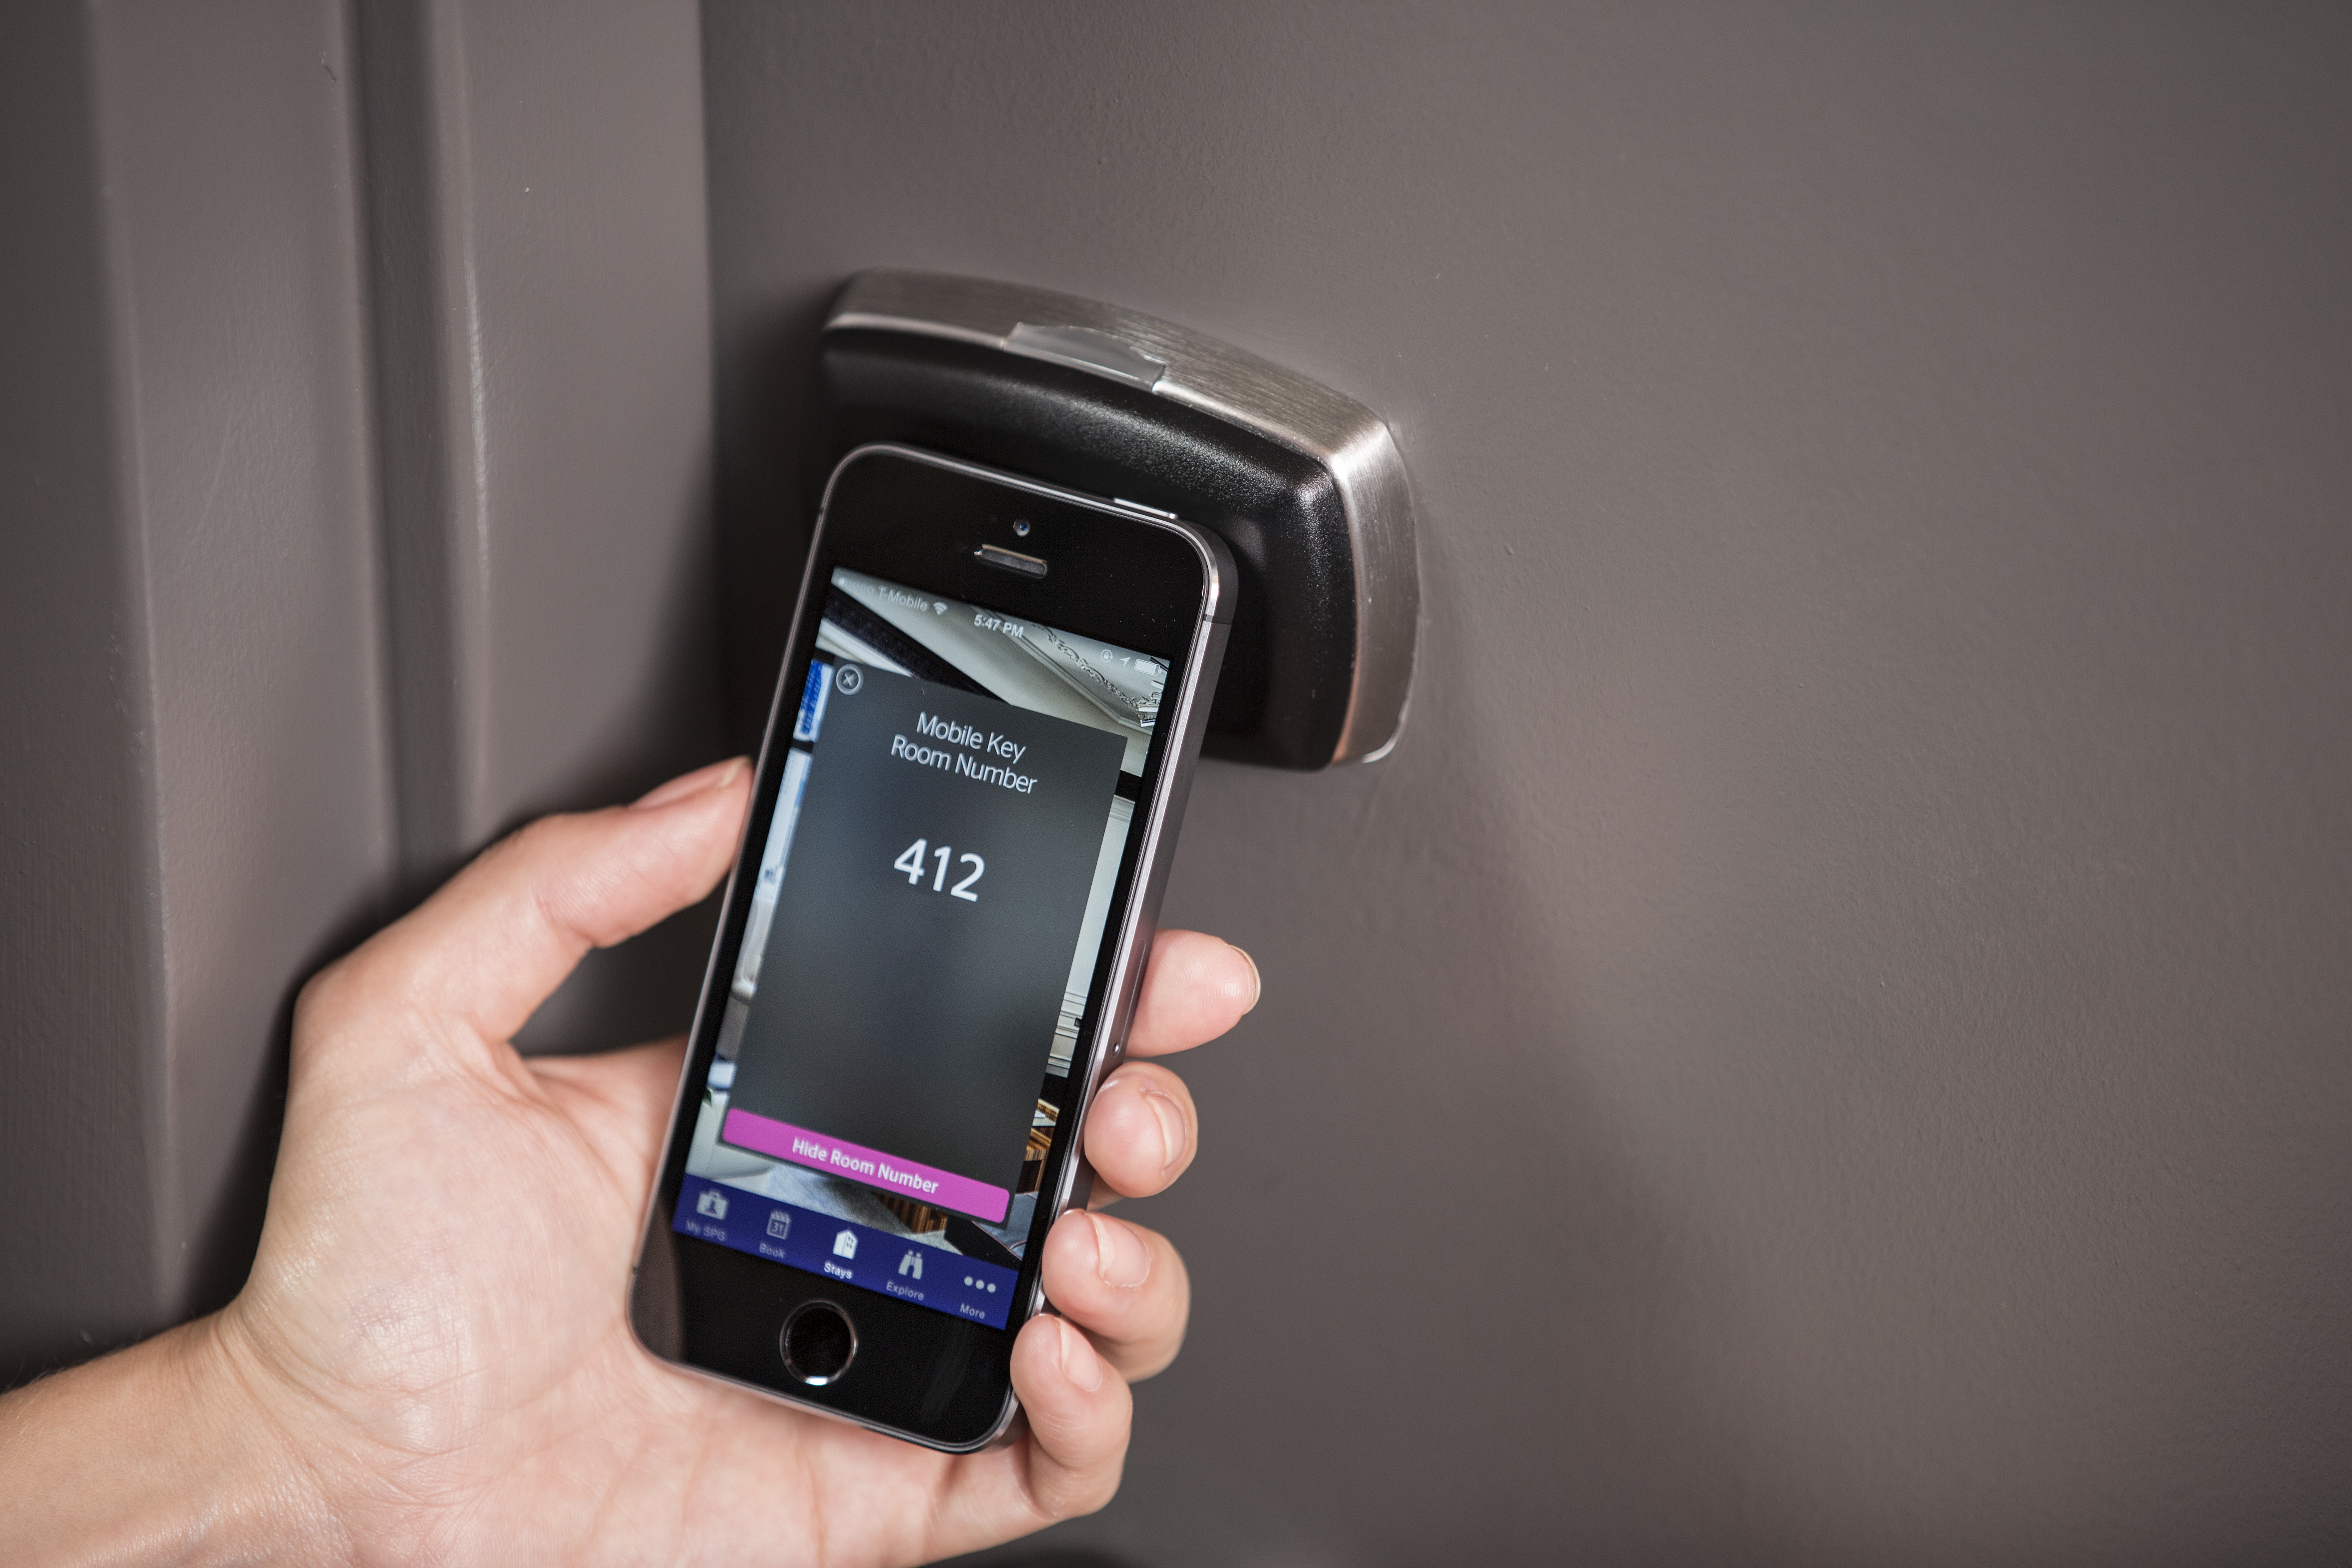 Guests At Starwood Hotels Can Check In Enter Rooms With New